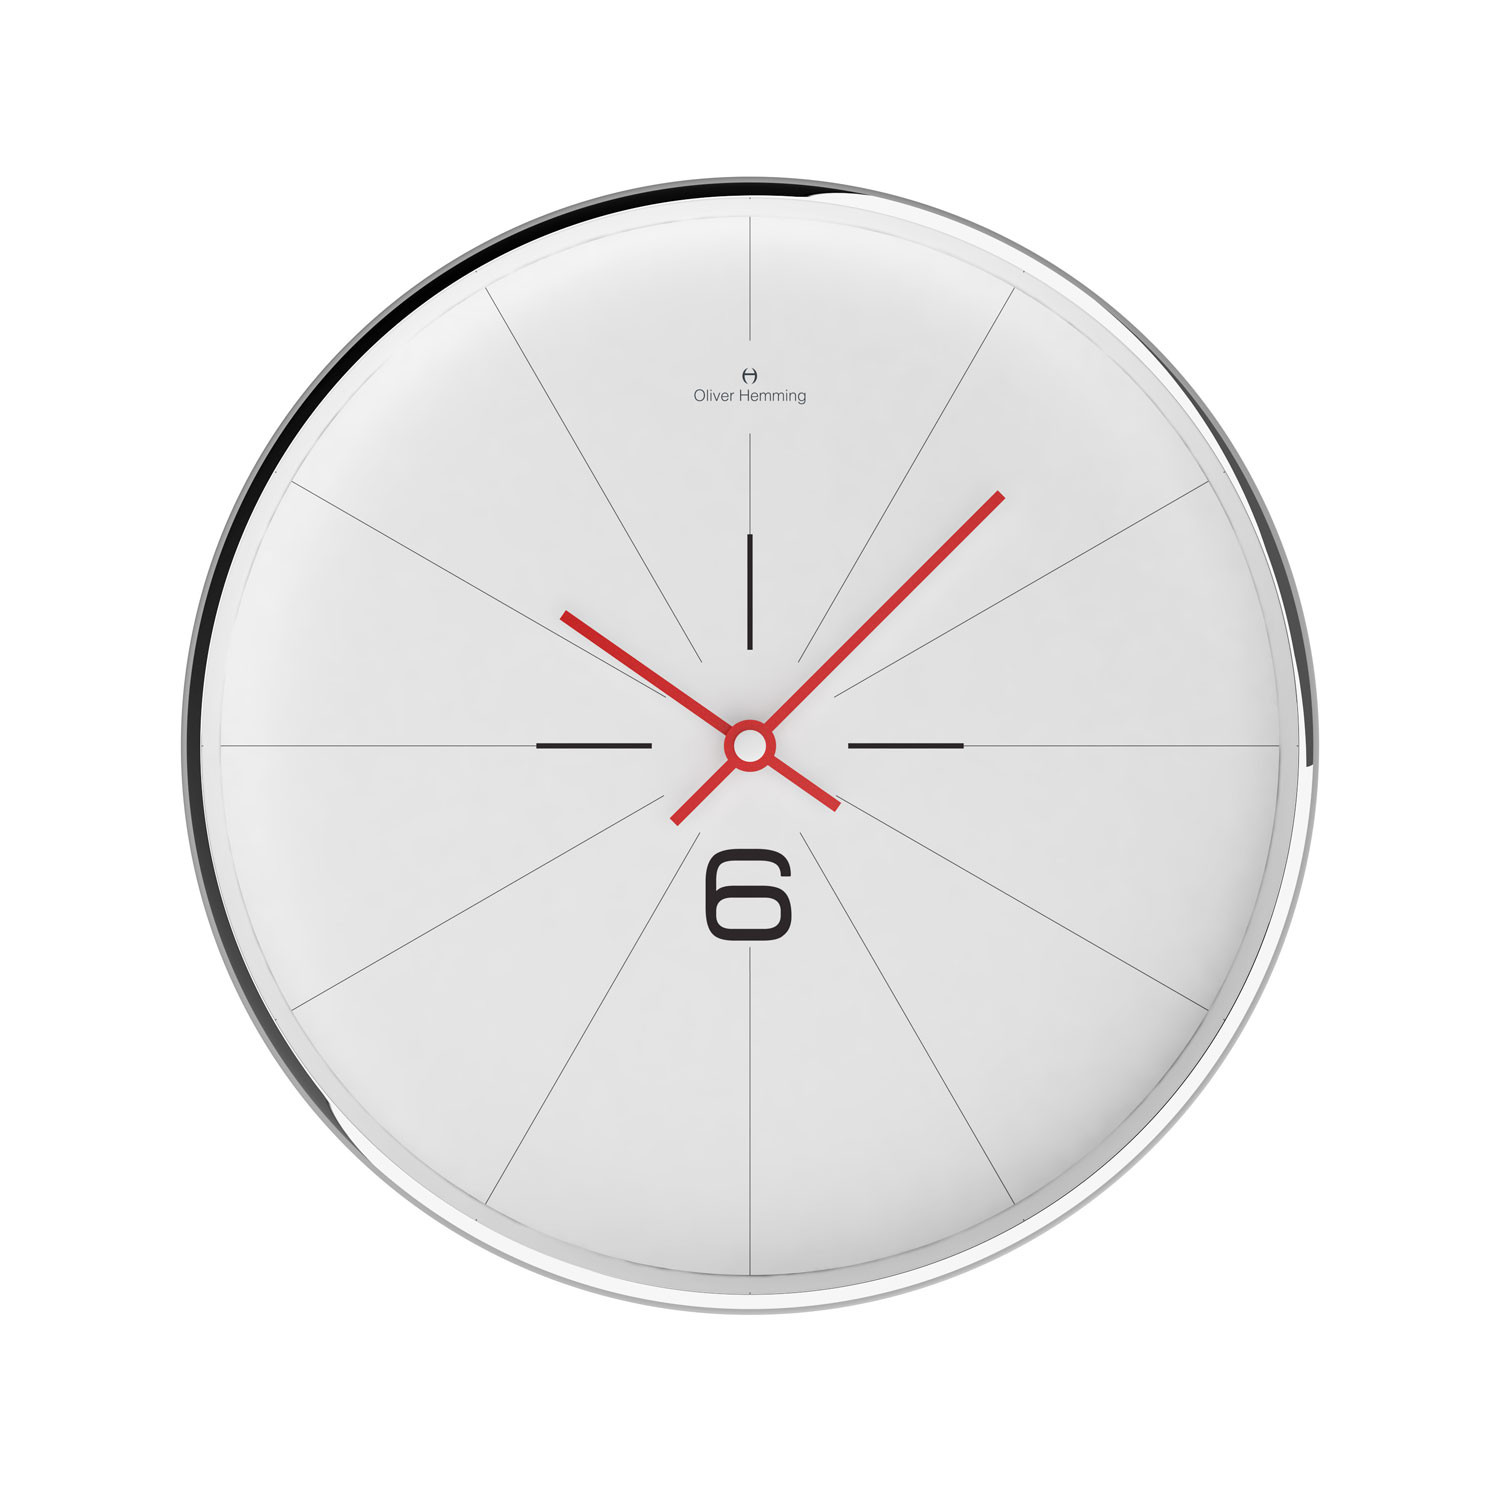 Chrome wall clock w303s26w oliver hemming wall clocks touch chrome wall clock w303s26w ccuart Choice Image